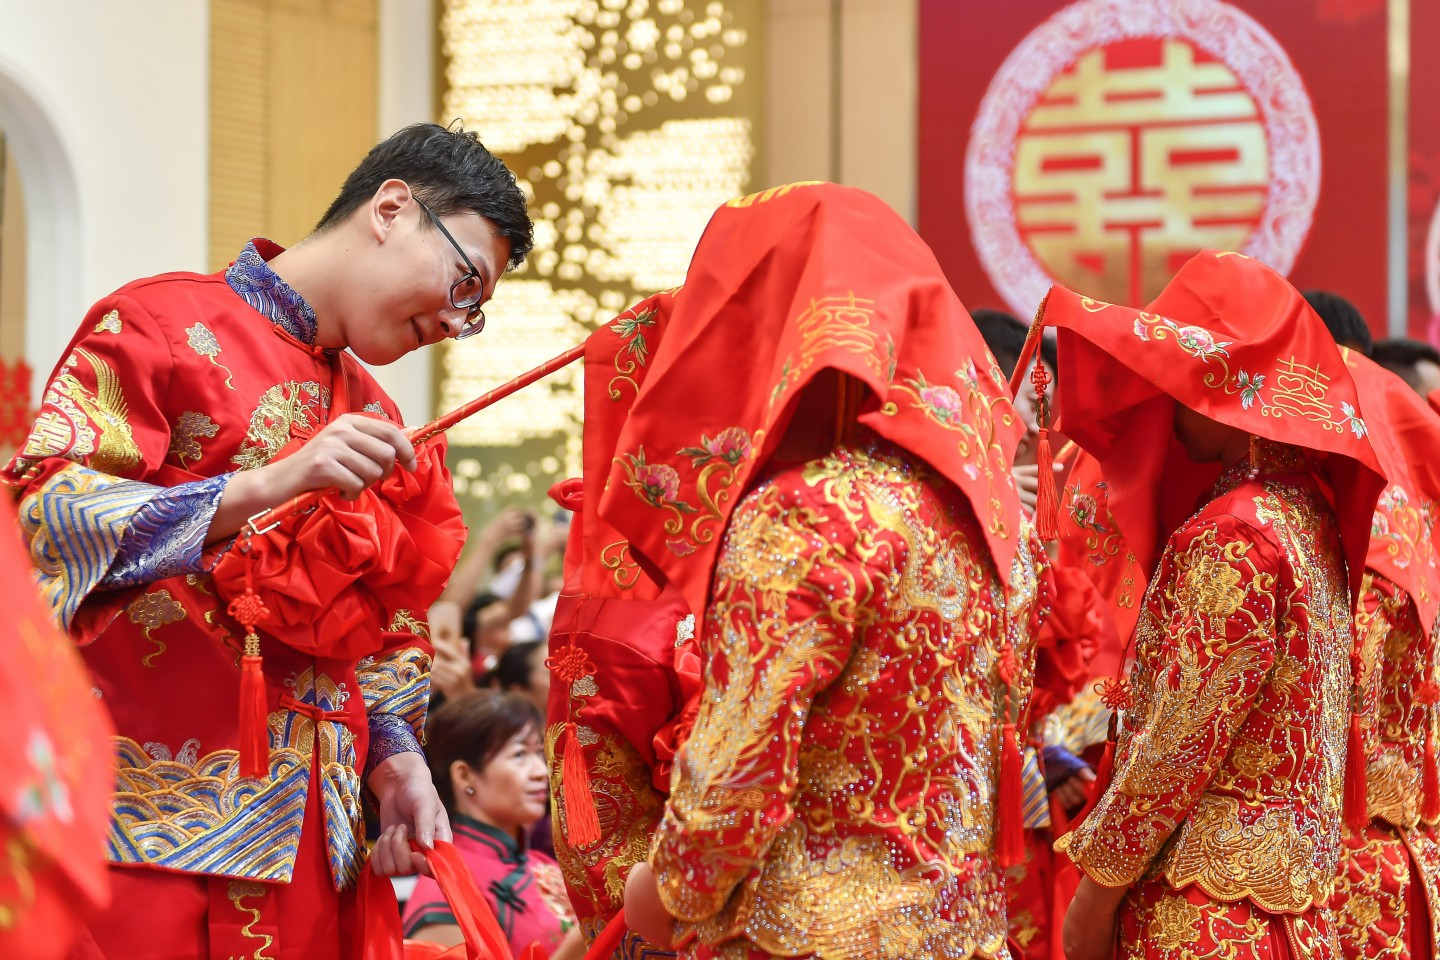 30 couples tie the knot on 11 November 2019 at Guangzhou, wearing traditional Chinese wedding gowns. The picture shows the groom unveiling his bride. (CNS)